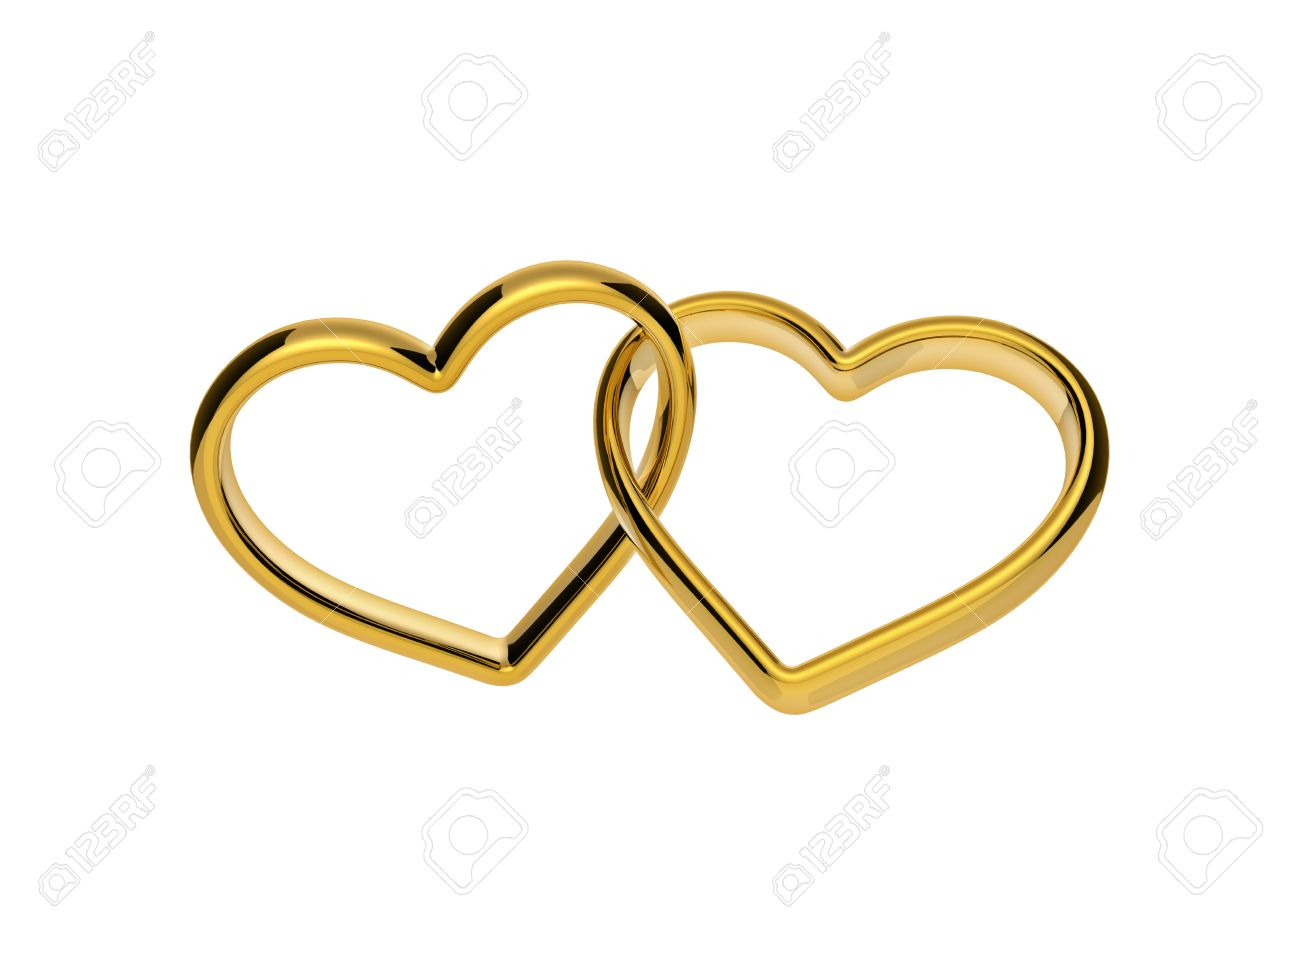 3d Golden Hearts Connected Together Linked Rings Marriage Symbol